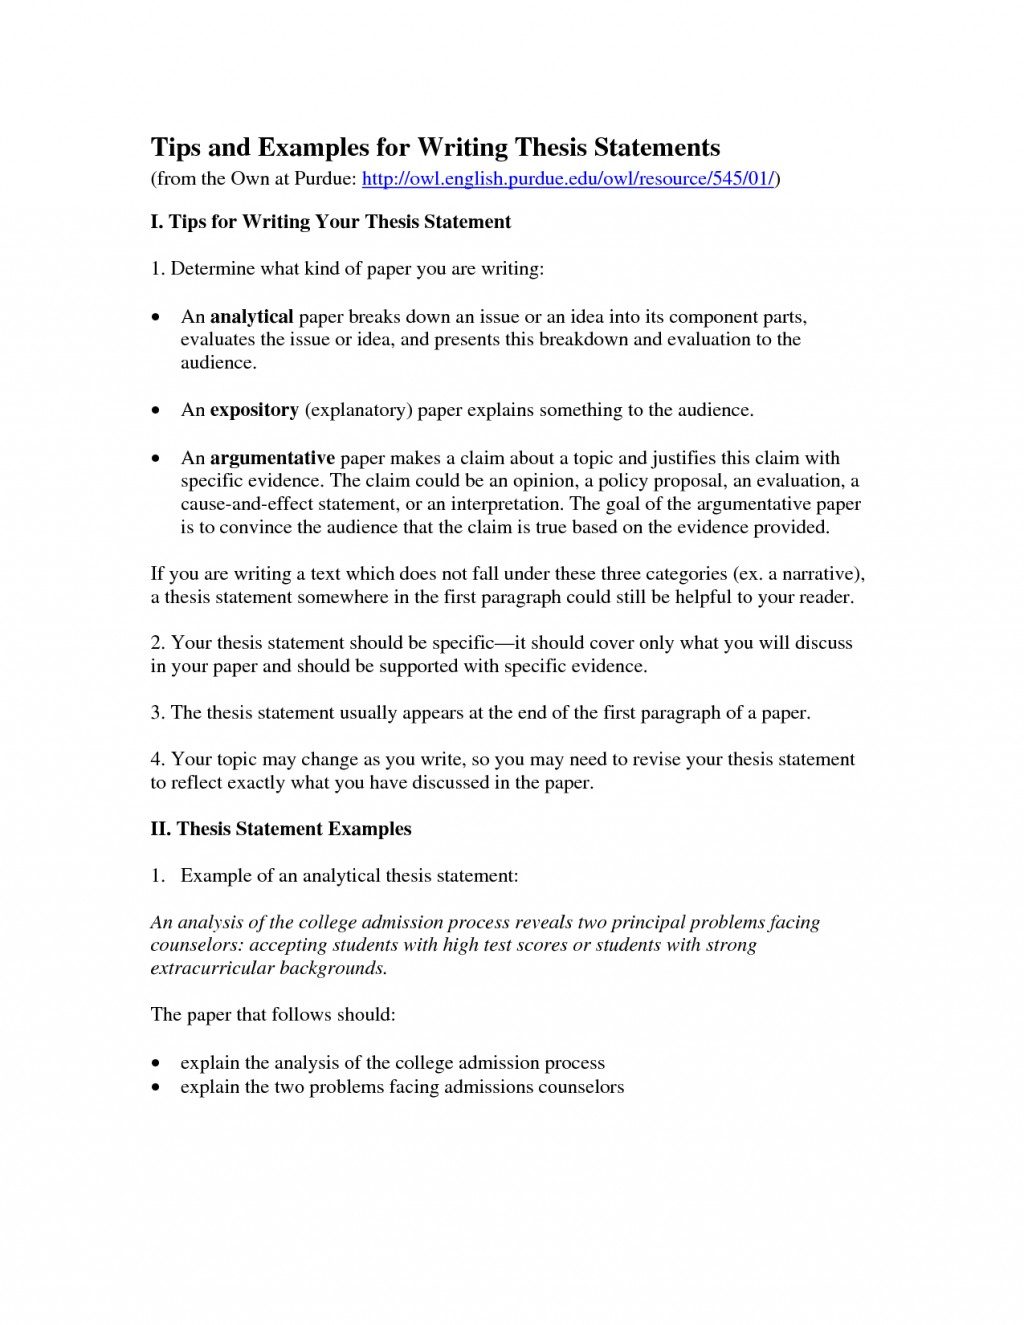 005 Expository Essay Thesis Statement Bunch Ideas Of Argument Topics For High School My Family English With Greatples Photo Incredible Examples Worksheet Large